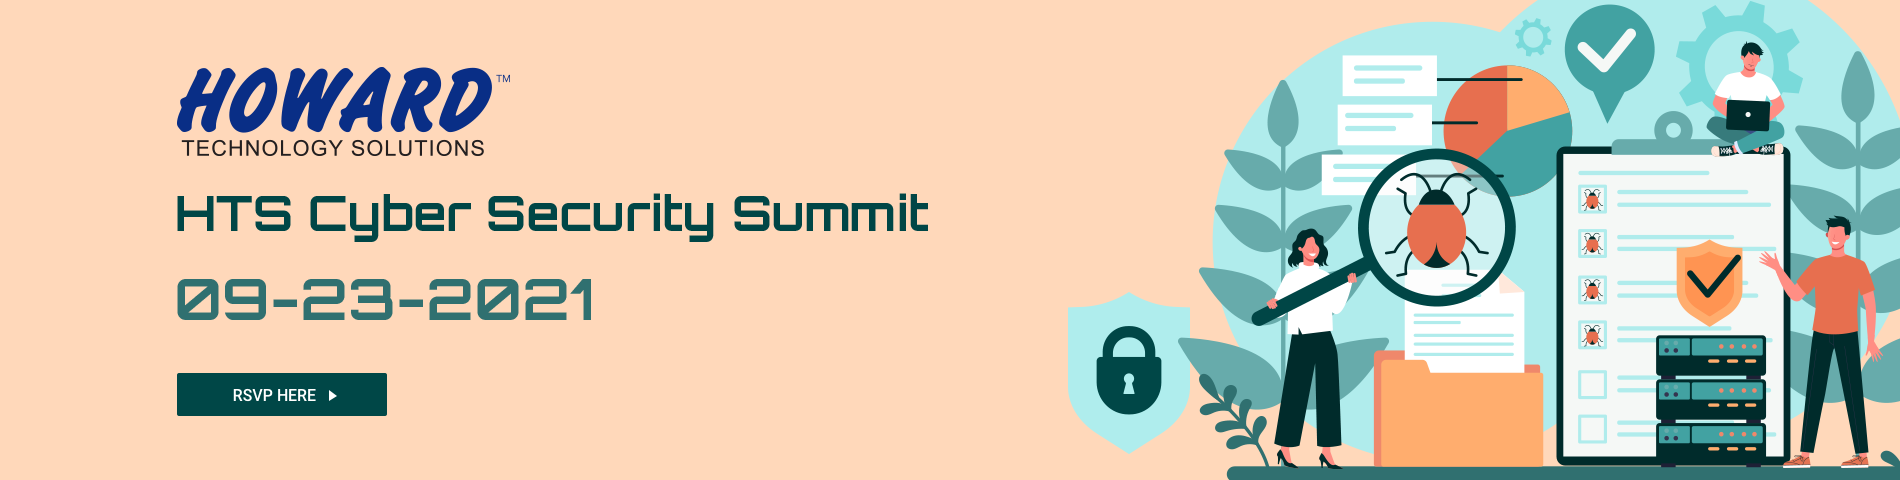 HTS Cyber Security Summit